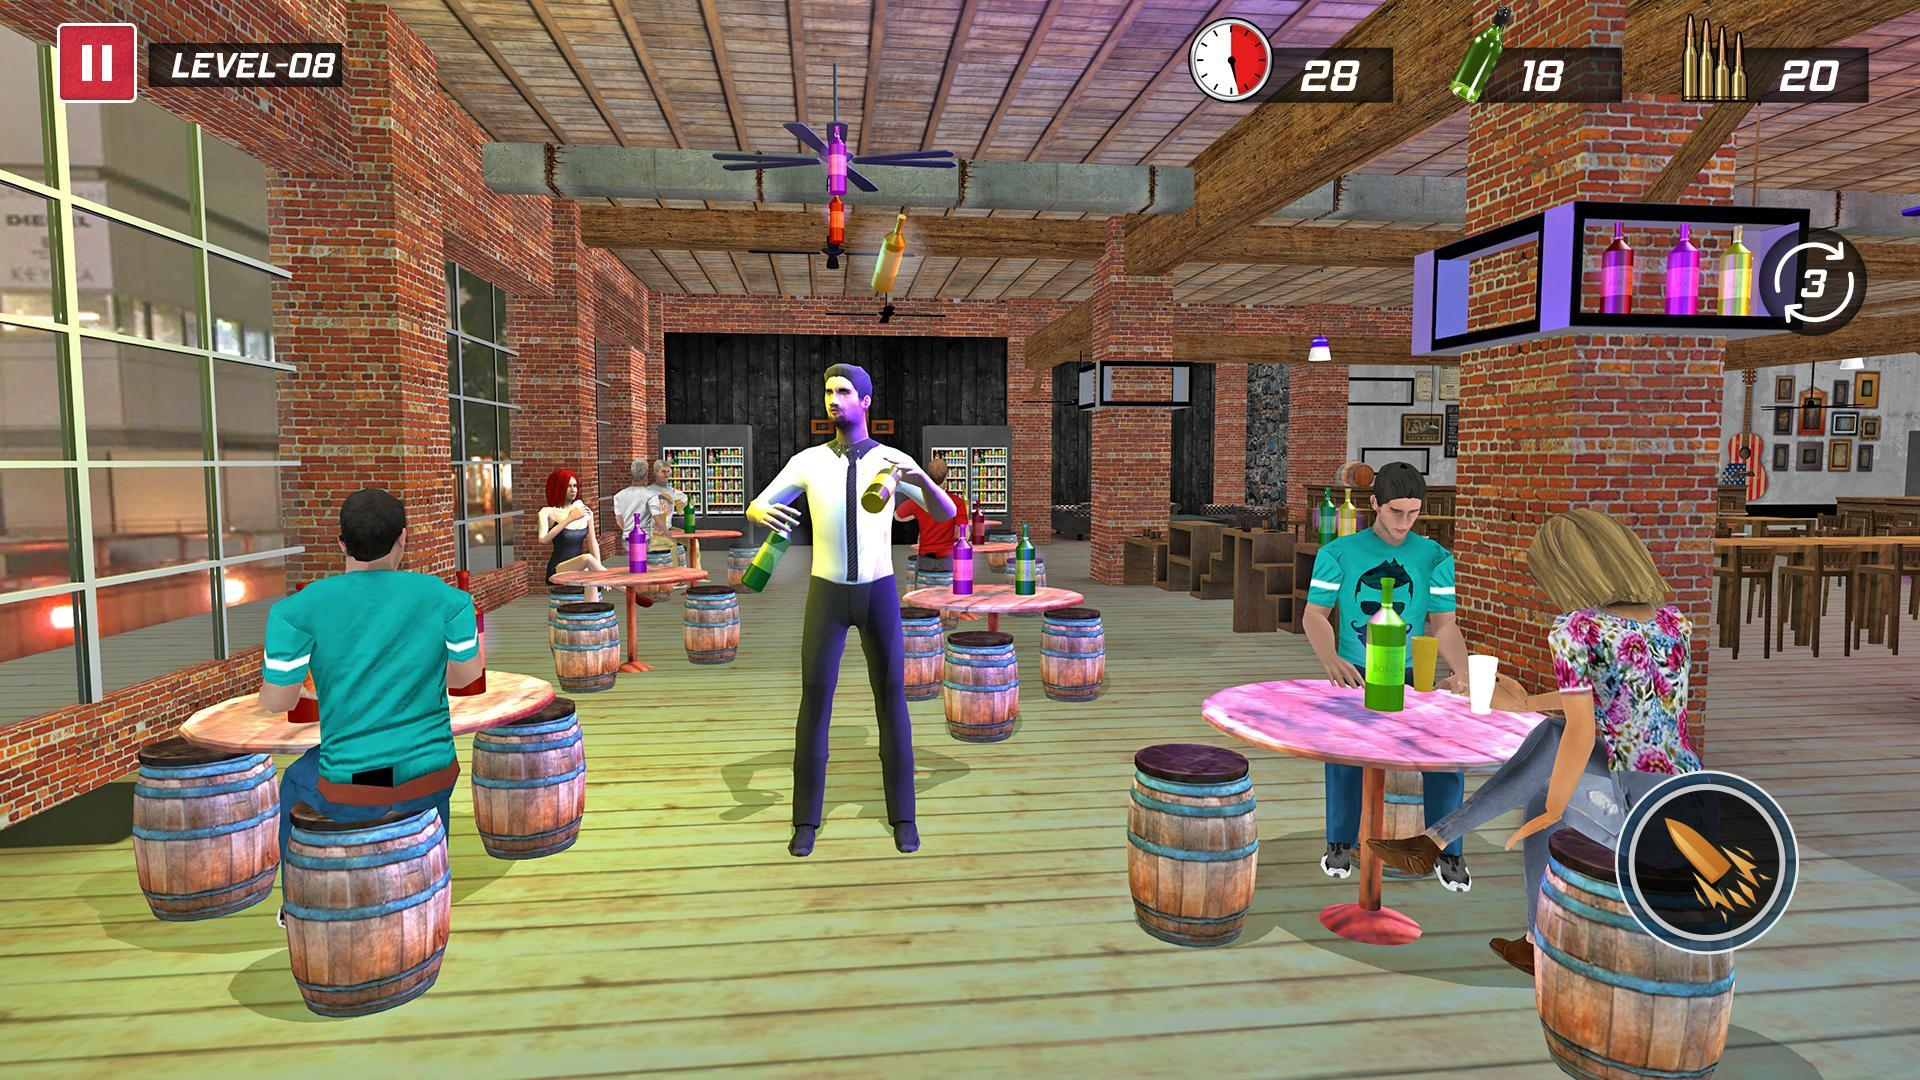 Android Games 2020.Bottle Shooting Games 2020 Free For Android Apk Download